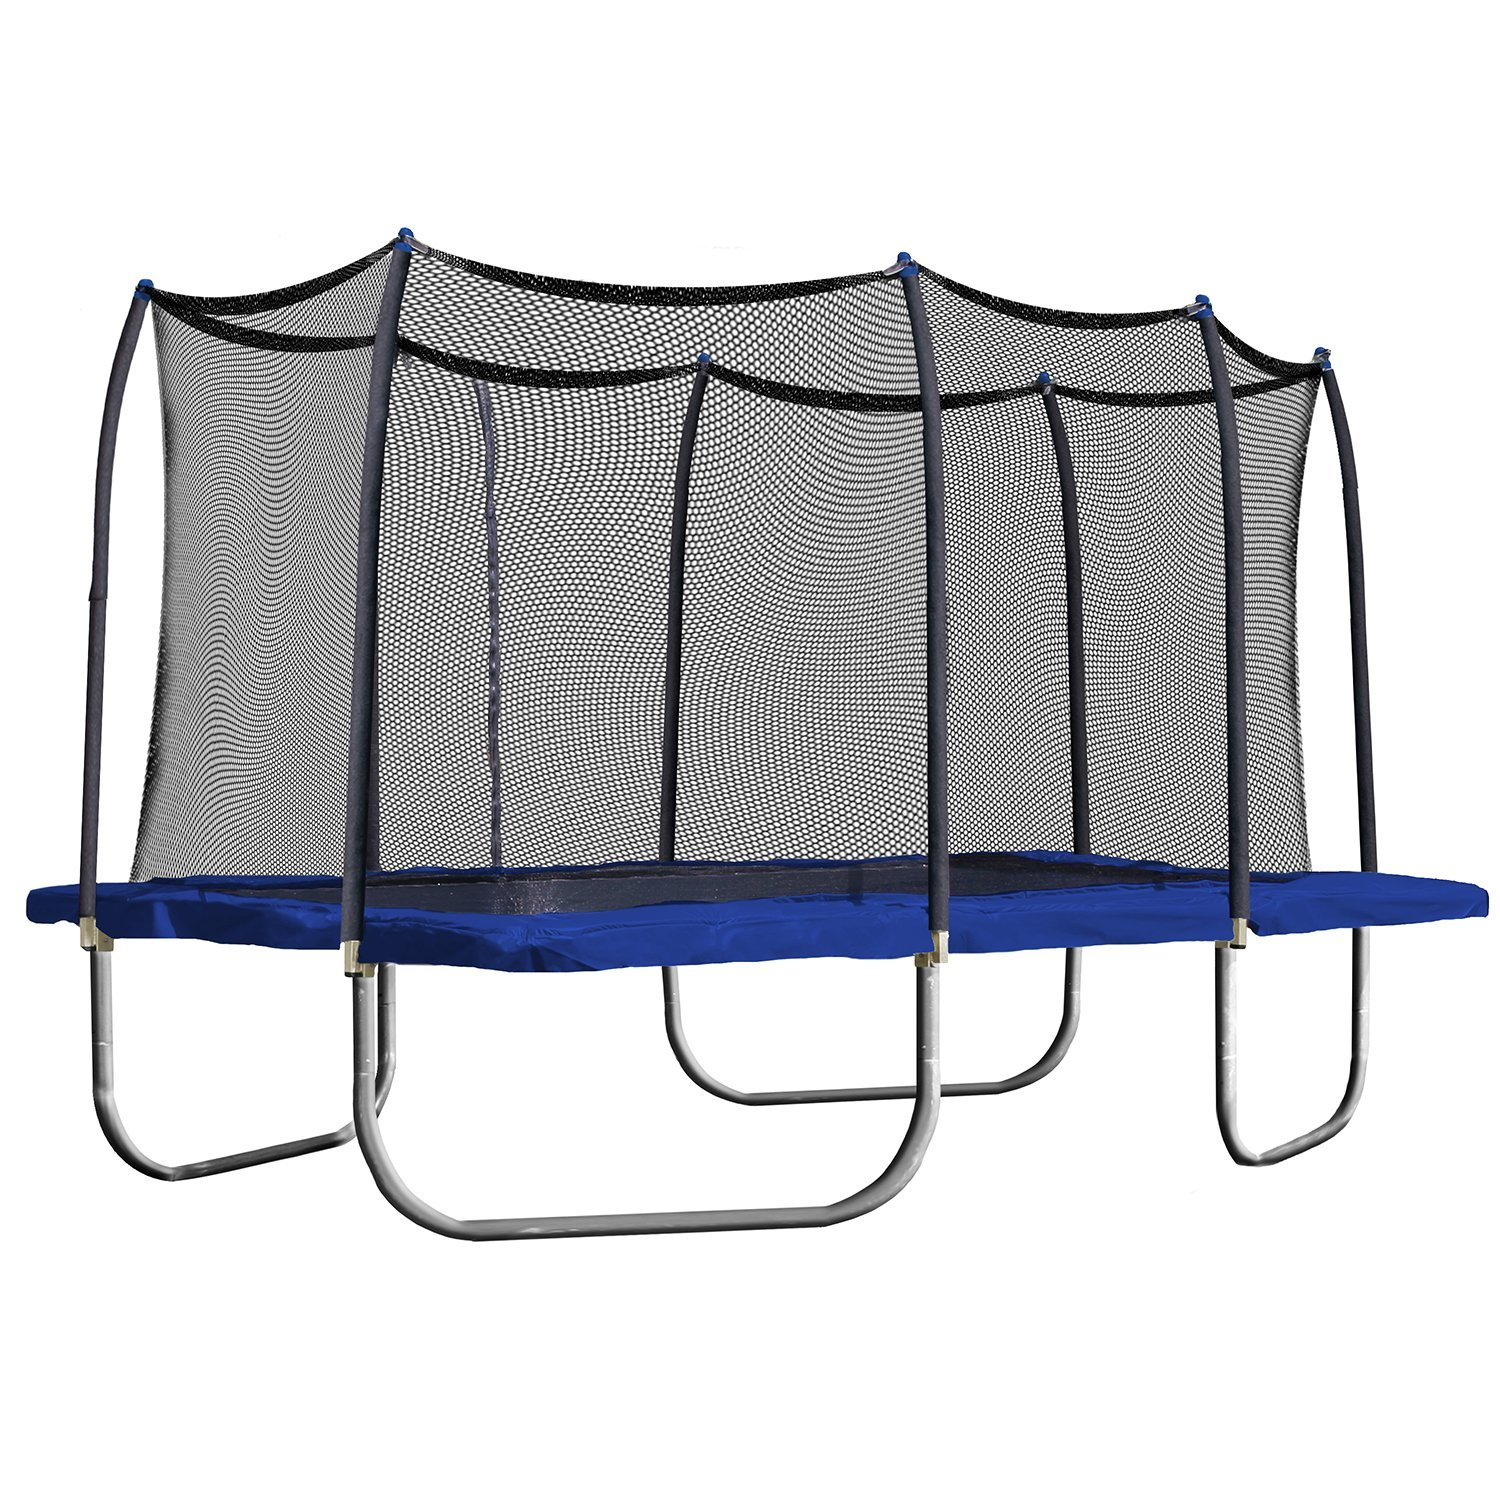 Skywalker 15 Foot Rectangle Trampoline with Enclosure